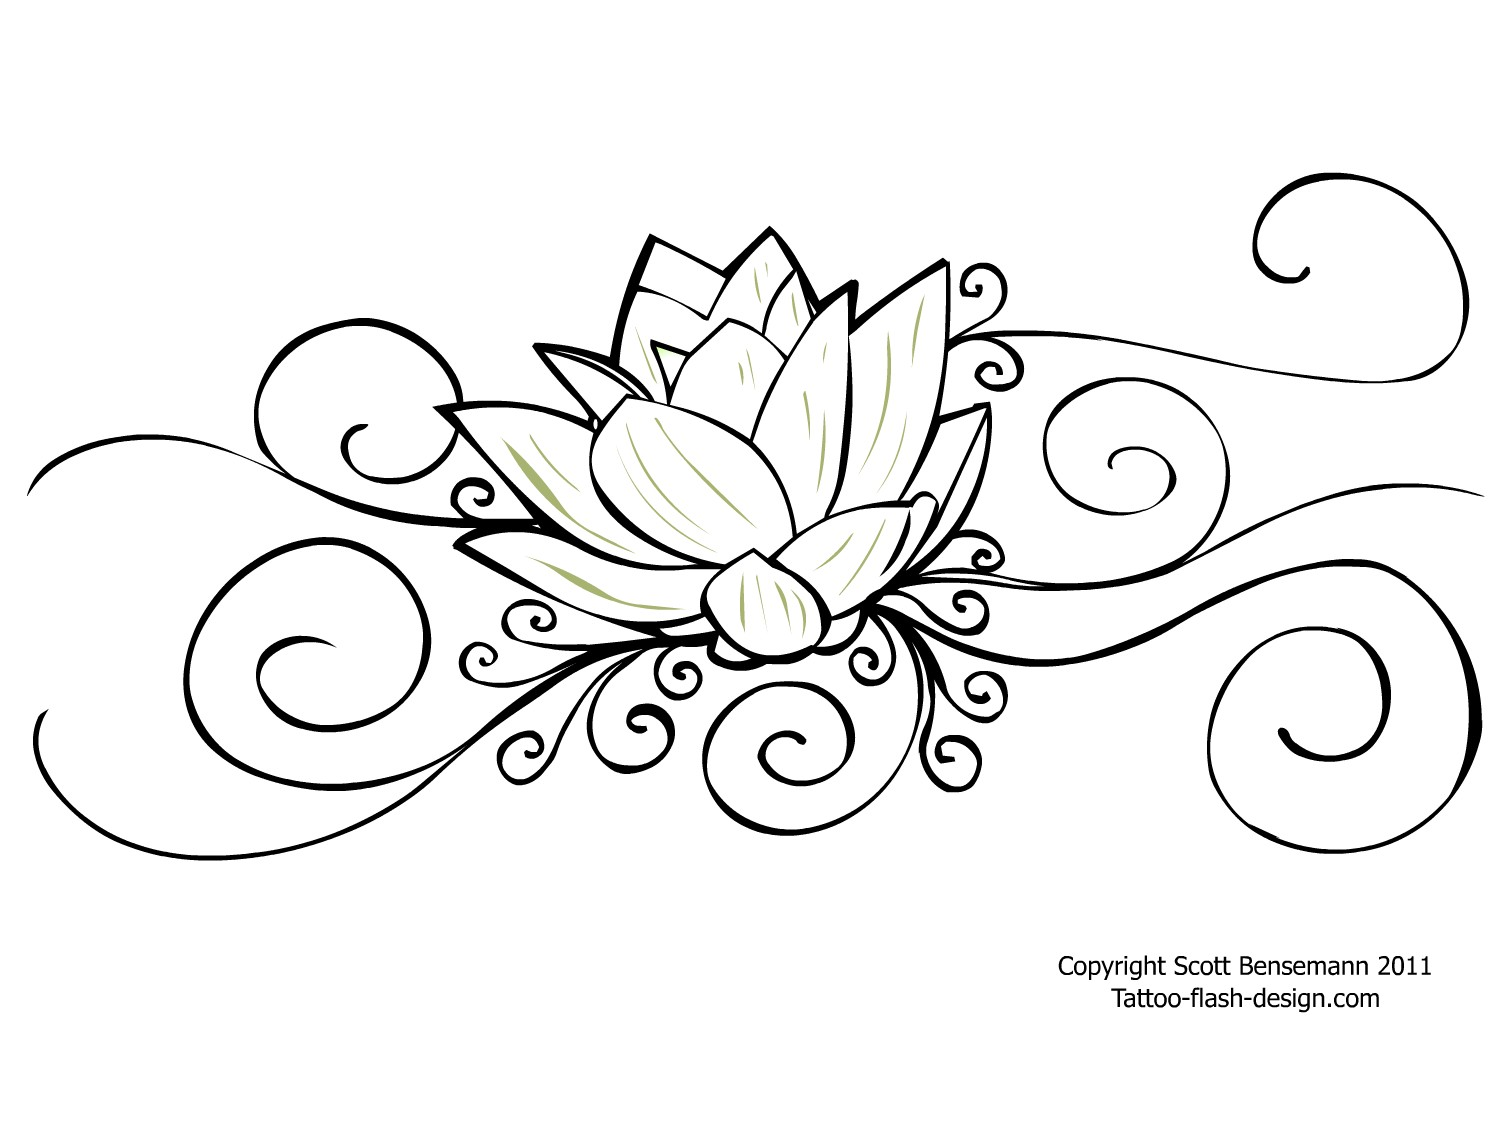 Awesome outline flower tattoo design izmirmasajfo